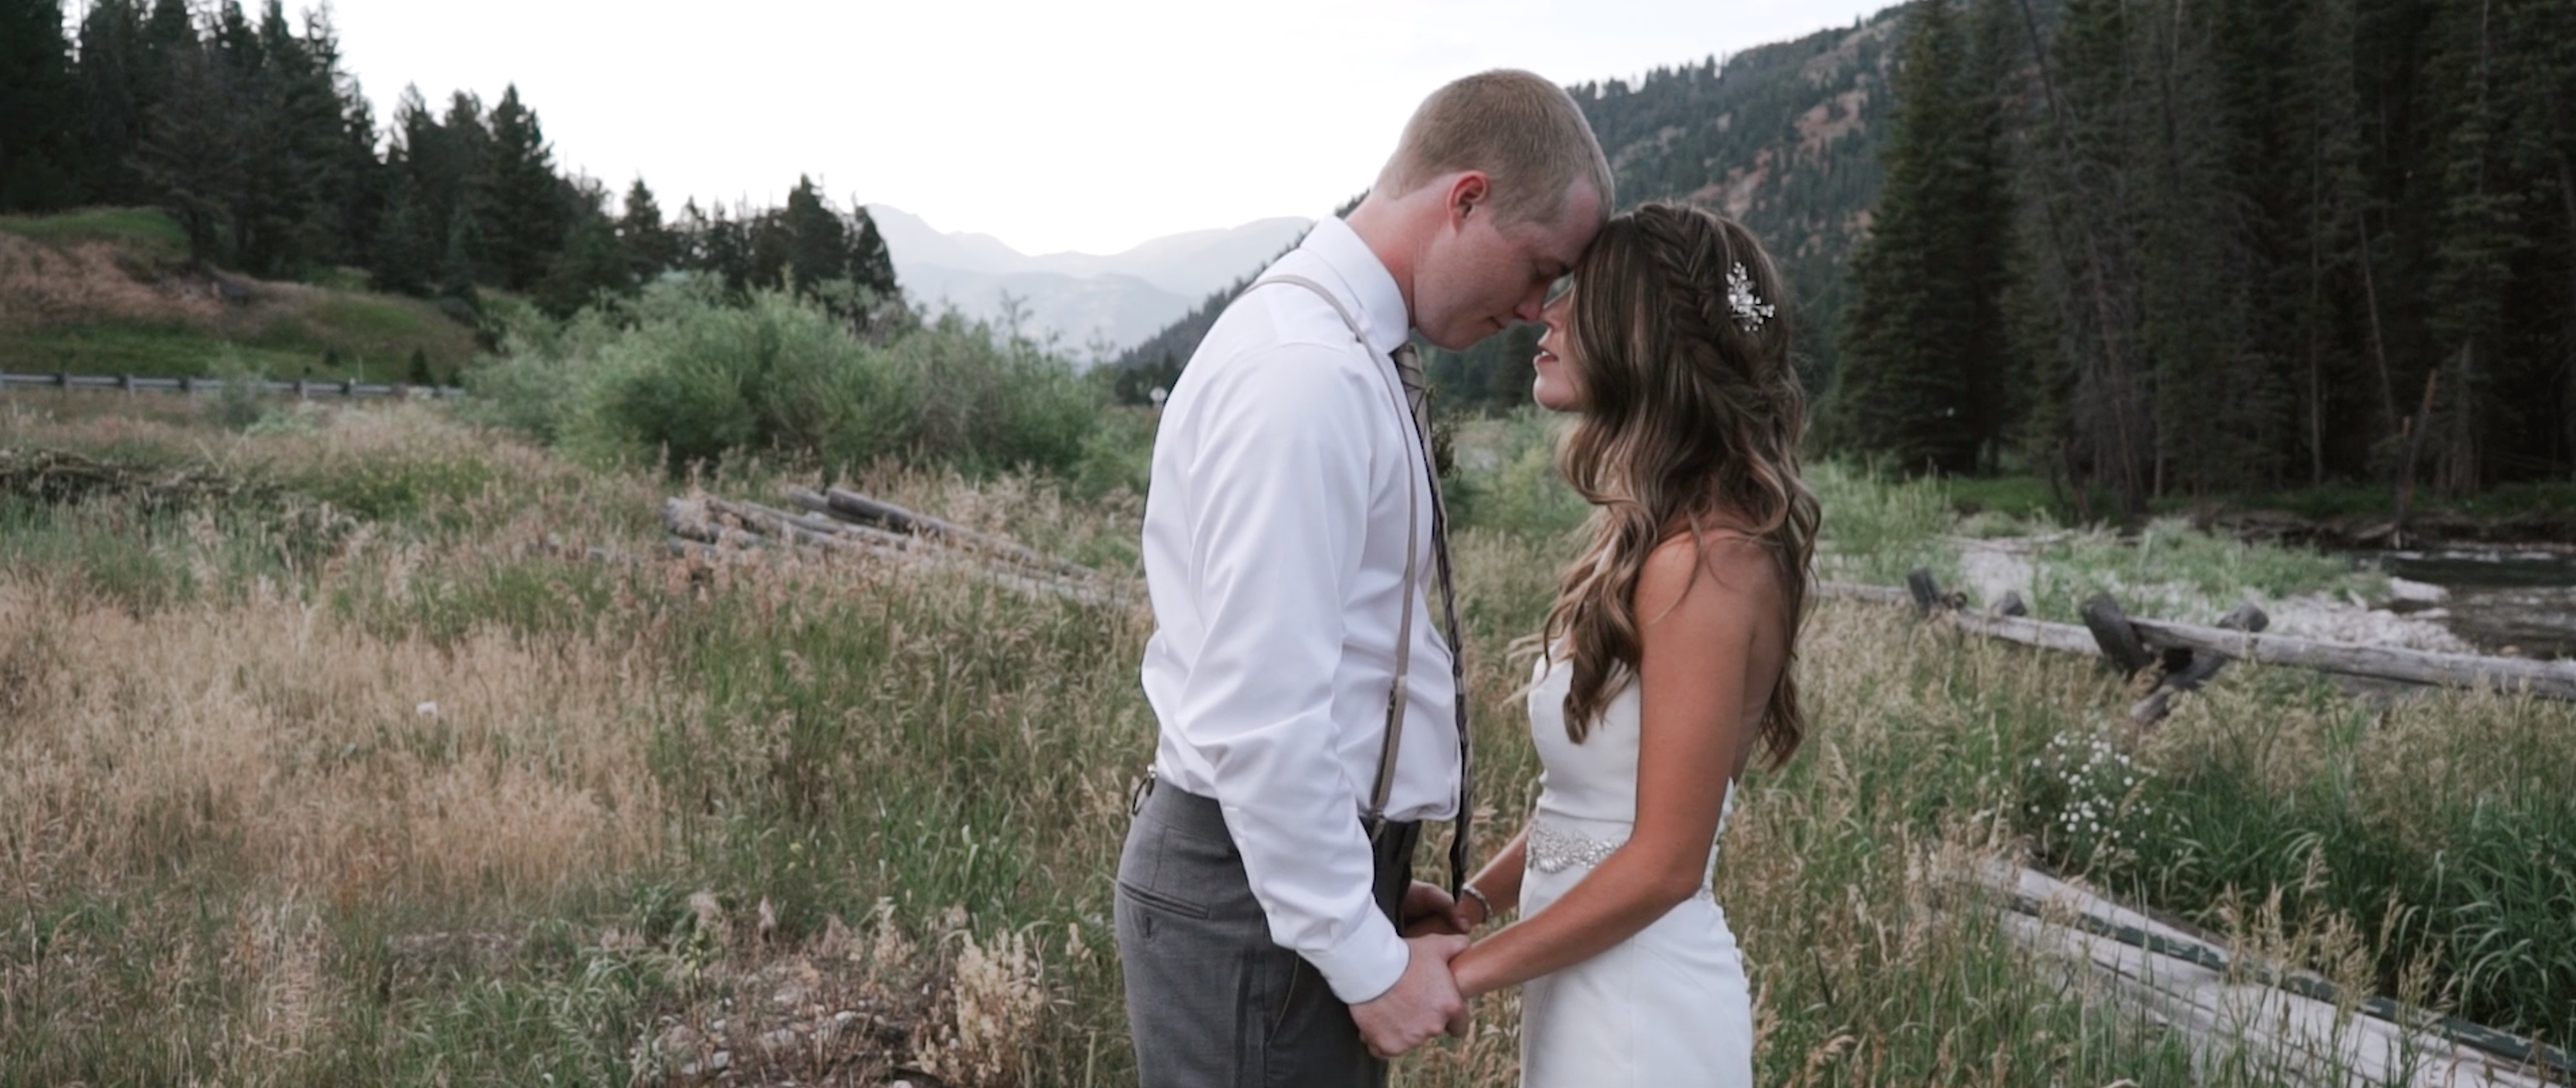 Dakota + Alexa | Big Sky, Montana | Rainbow Ranch Lodge